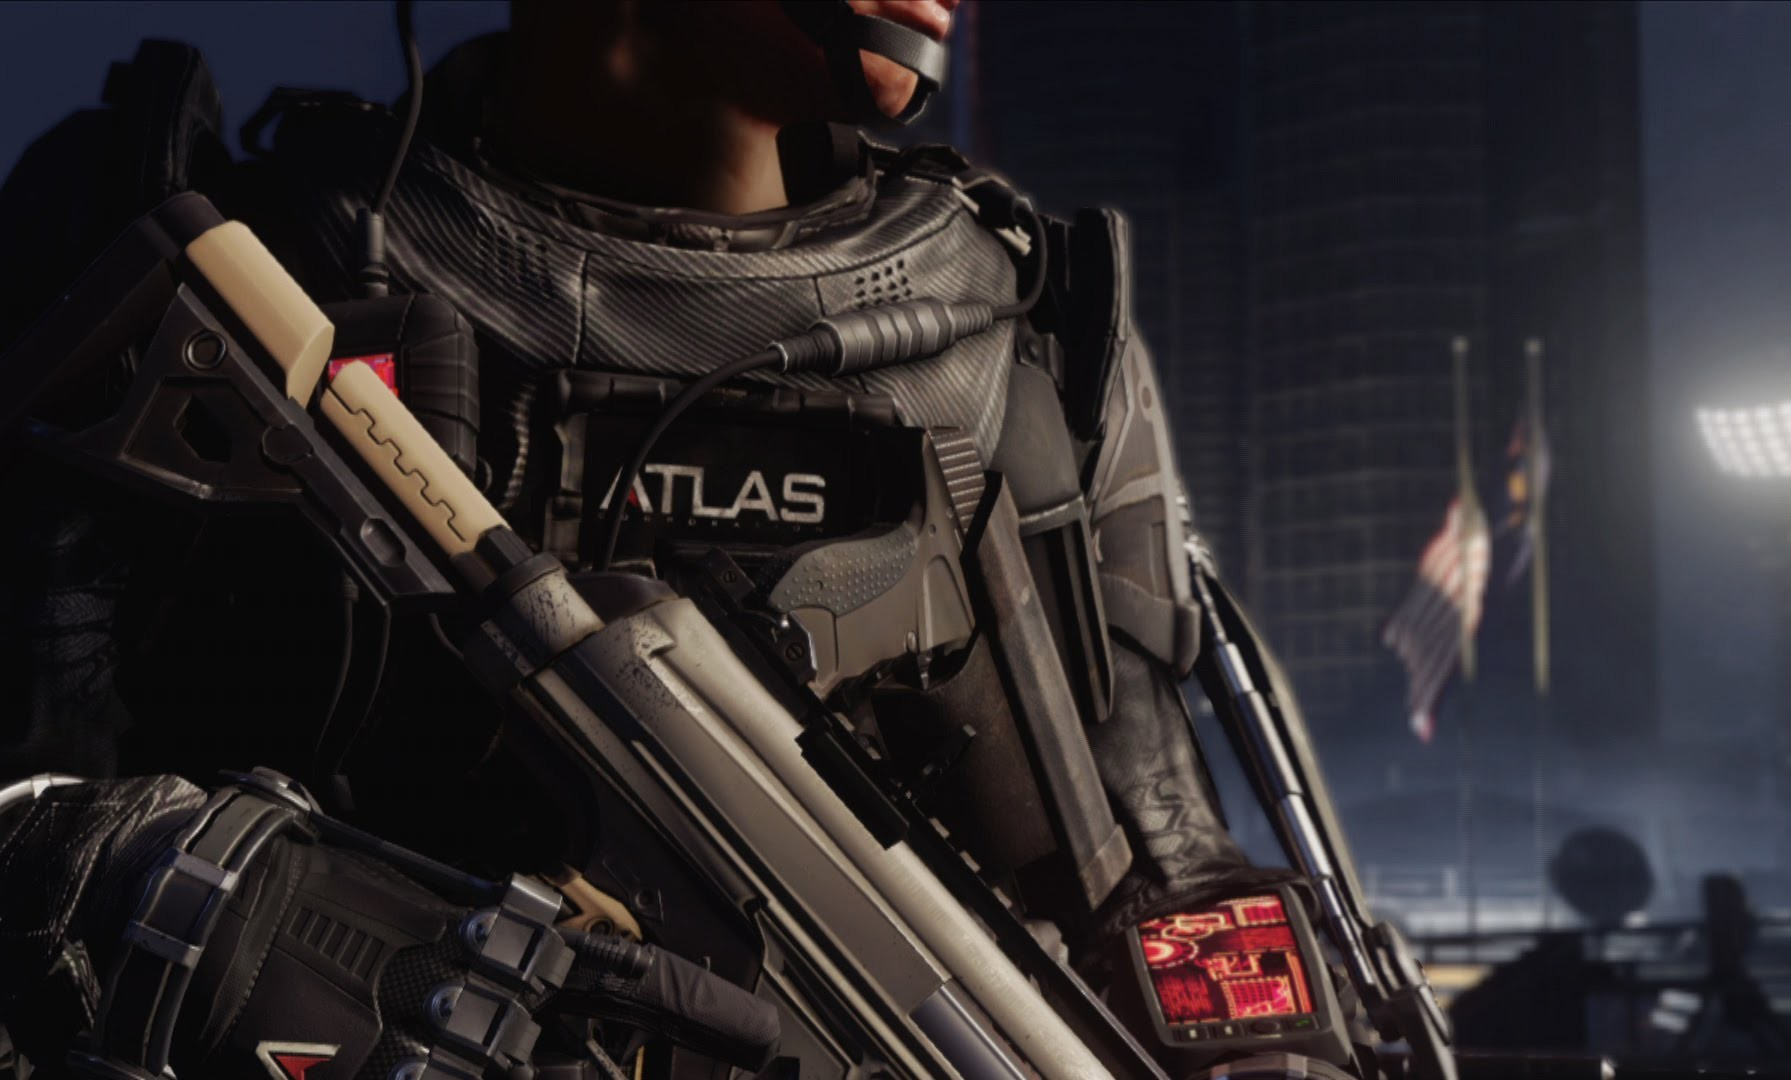 SOBRE LA CAMPAÑA DE CALL OF DUTY: ADVANCED WARFARE